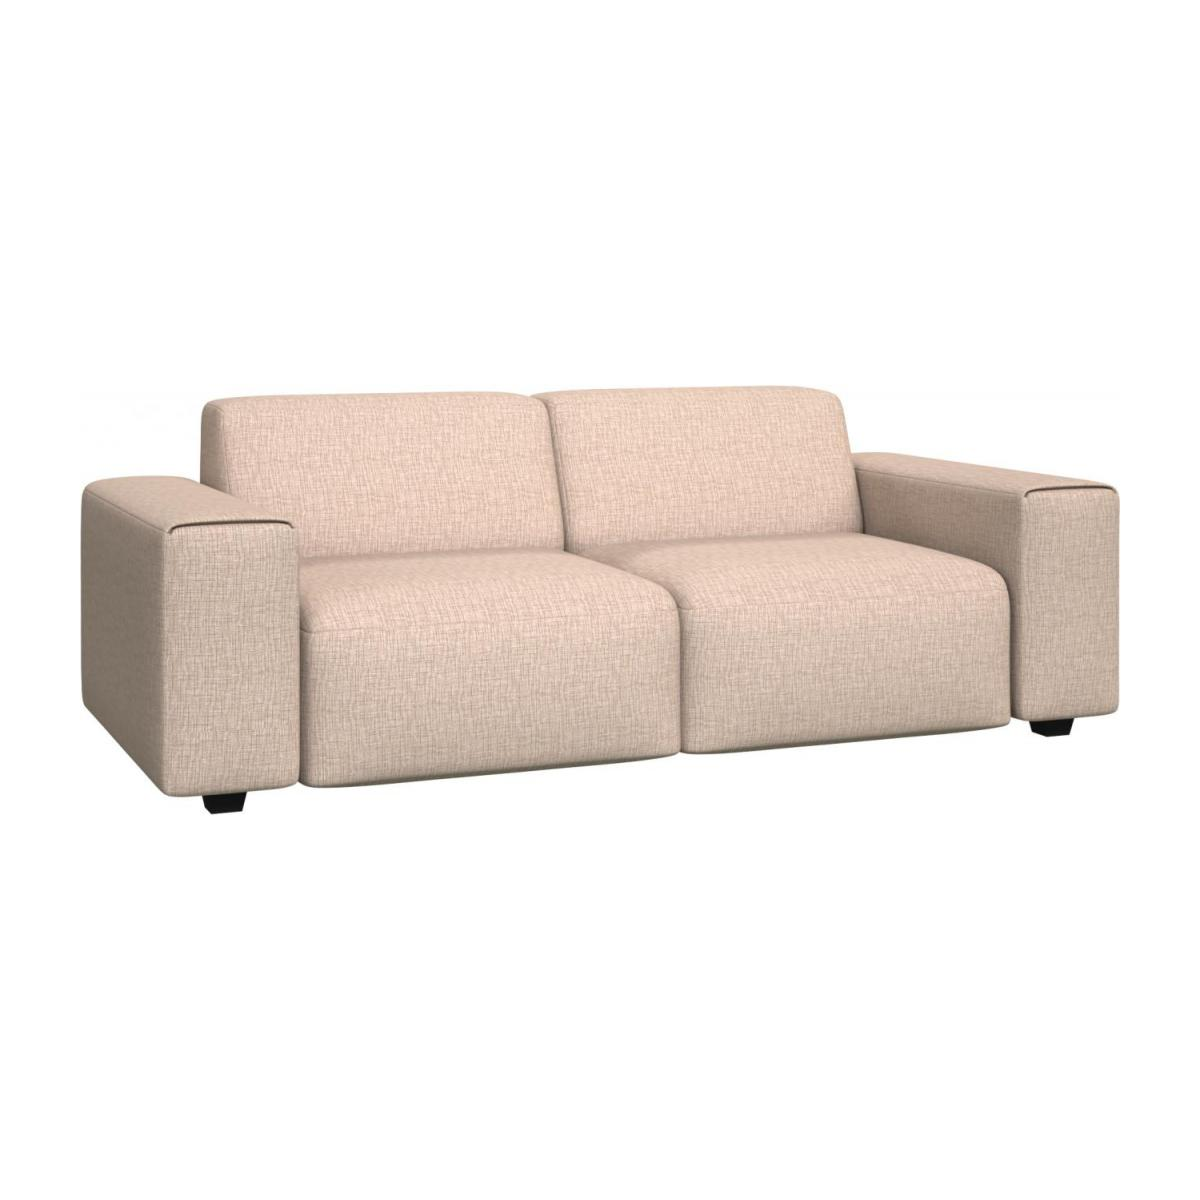 3 seater sofa in Ancio fabric, nature n°1